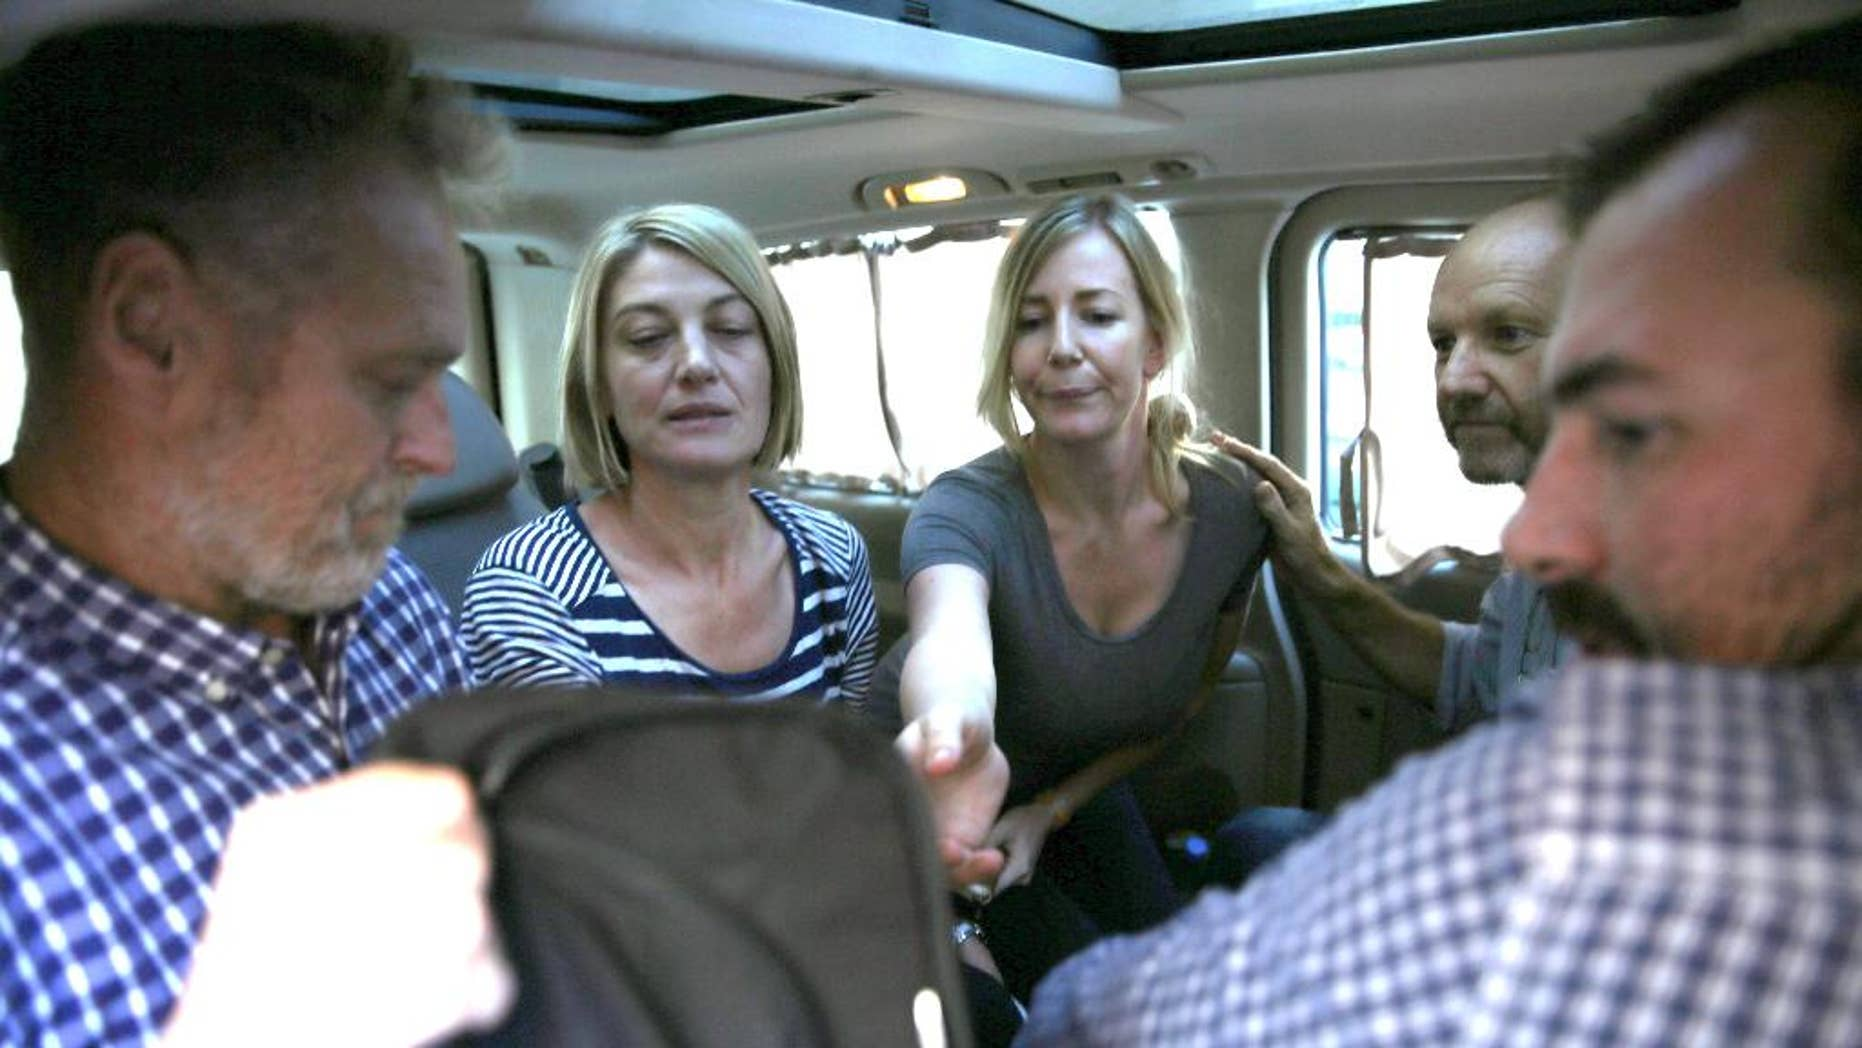 Australian journalist Tara Brown, second left, and Sally Faulkner, center, with other members of the TV crew.